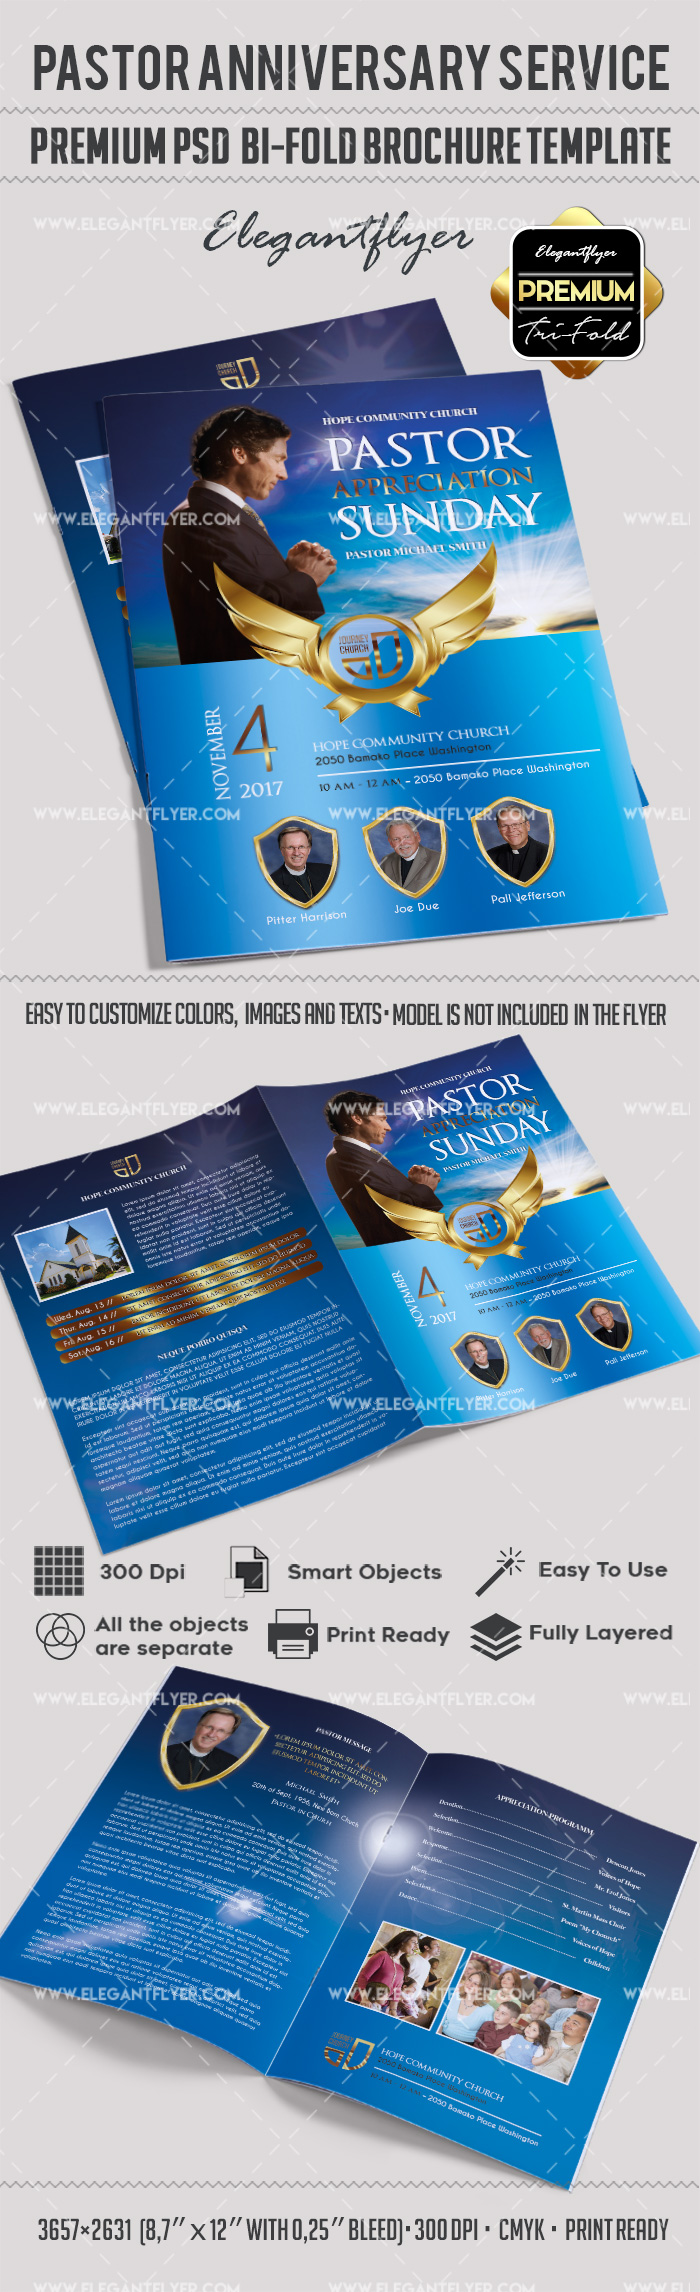 2 fold brochure template psd - bi fold brochure for pastor appreciation sunday by